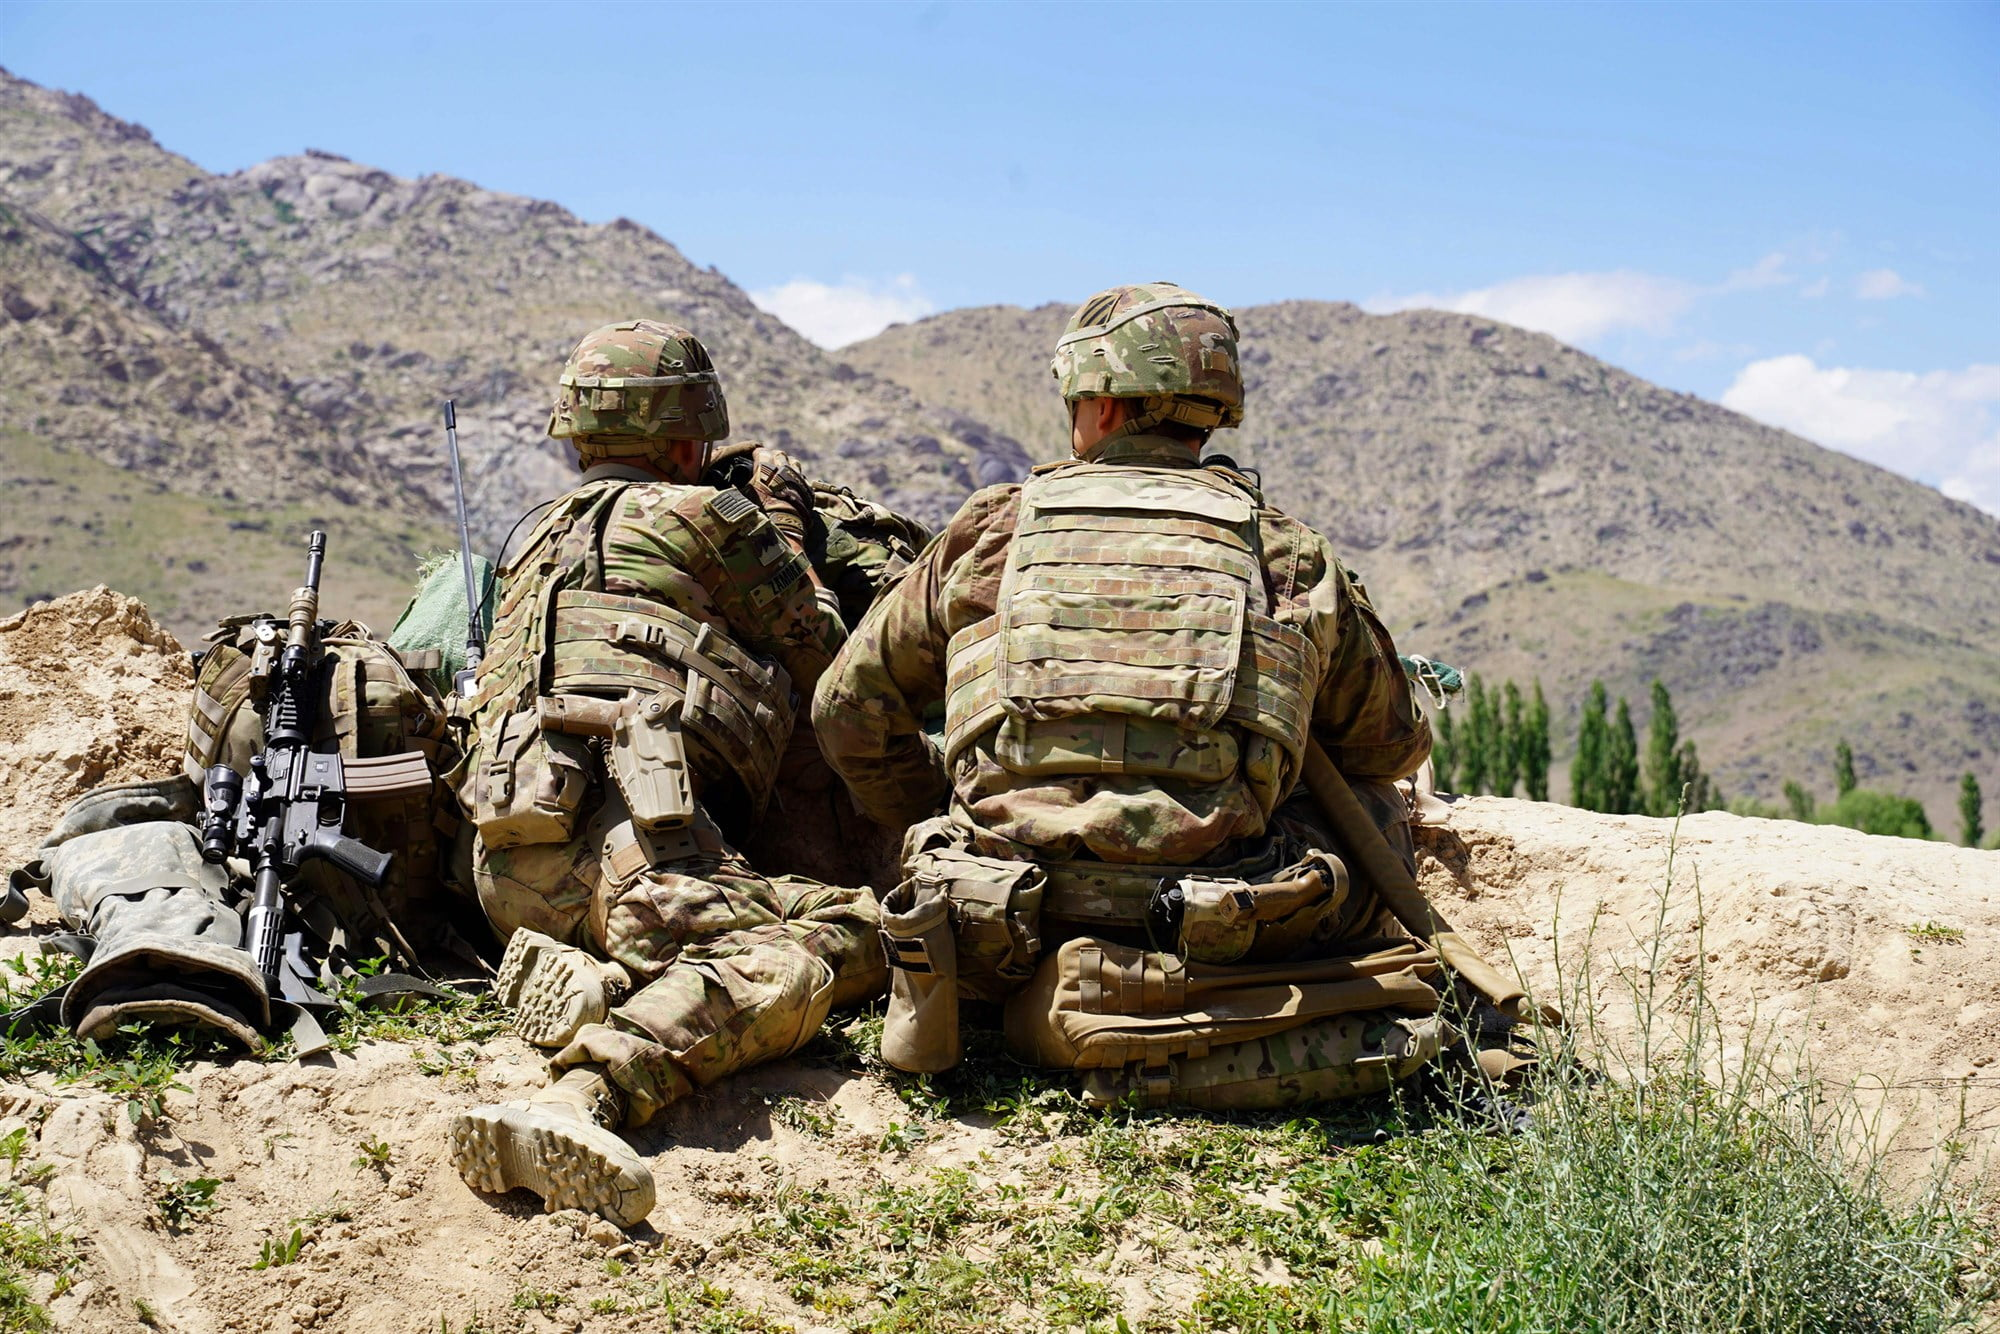 200424 us soldiers afghanistan se1212p 8e1ba60fd90bc03750d2e56be6bd2b0a.fit 2000w - Trump Insists Pulling Troops Out of Afghanistan as COVID-19 Outbreak Looms